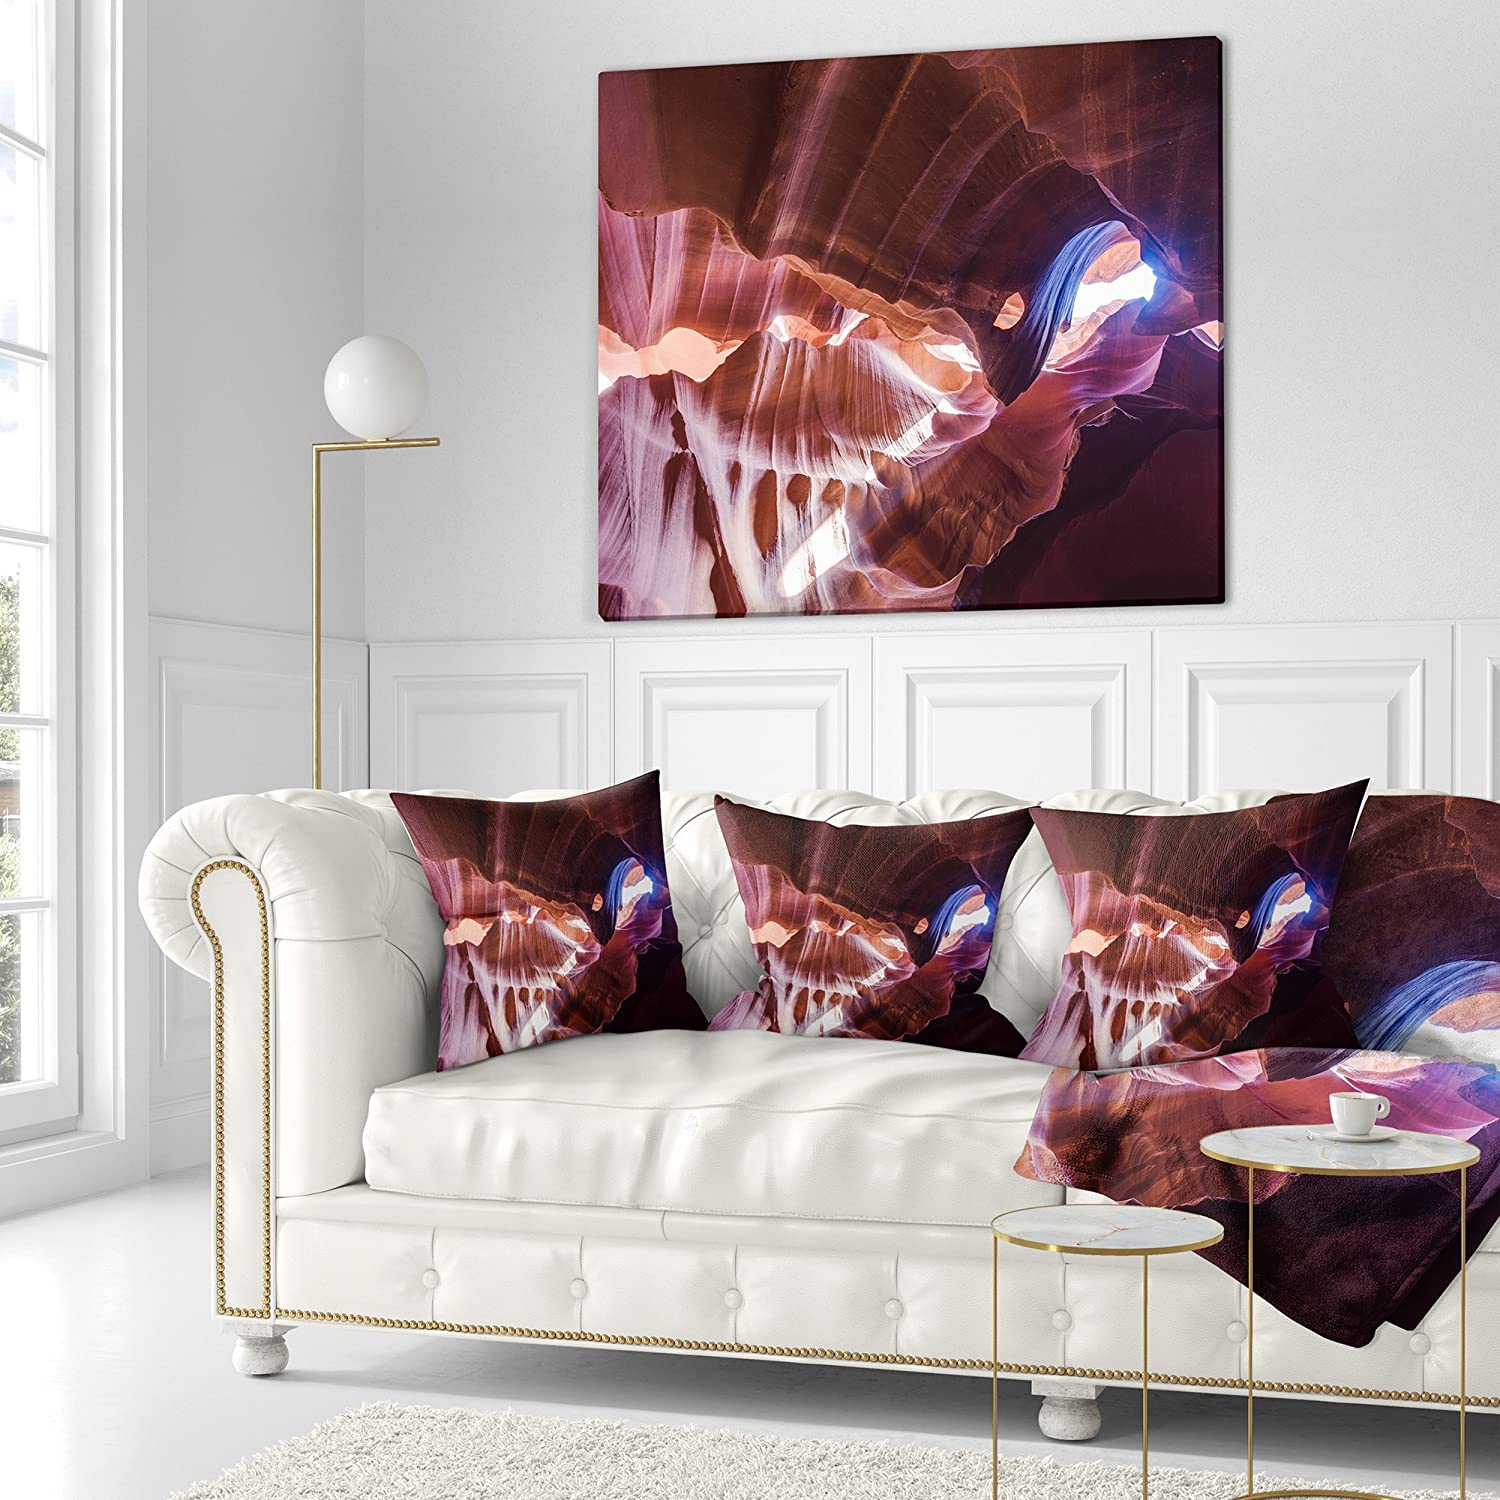 Designart CU8826-16-16 Blue Light in Antelope Canyon Landscape Photography Cushion Cover for Living Room Insert Printed On Both Side in Sofa Throw Pillow 16 in x 16 in